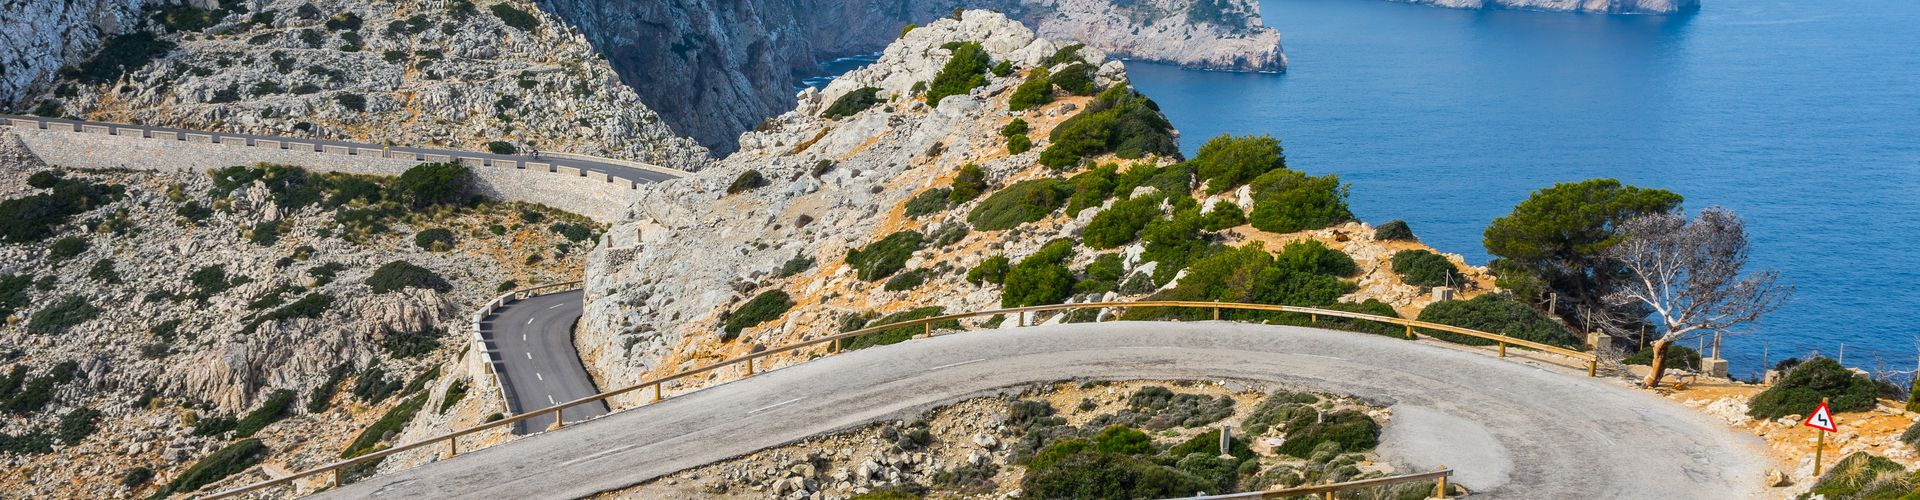 10 brilliant bike routes in Mallorca